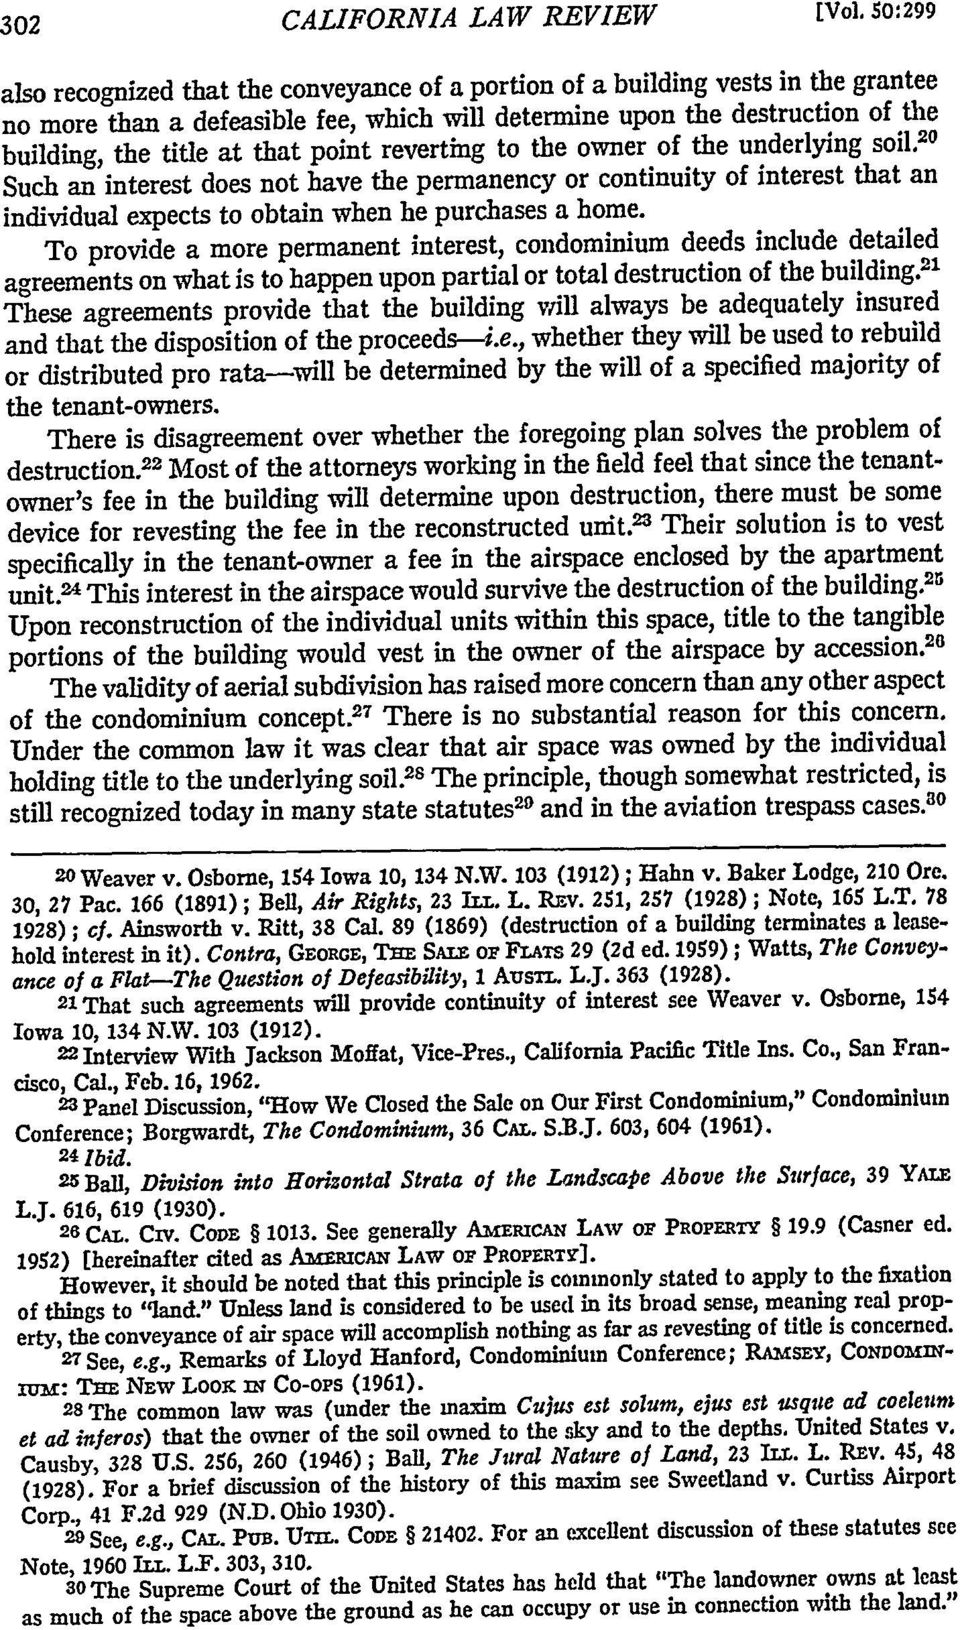 a history of the united states v causby case United states v causby, 328 us 256 (1946) united states v  but that general principle does not control the present case for the united states conceded on oral argument that, if the.